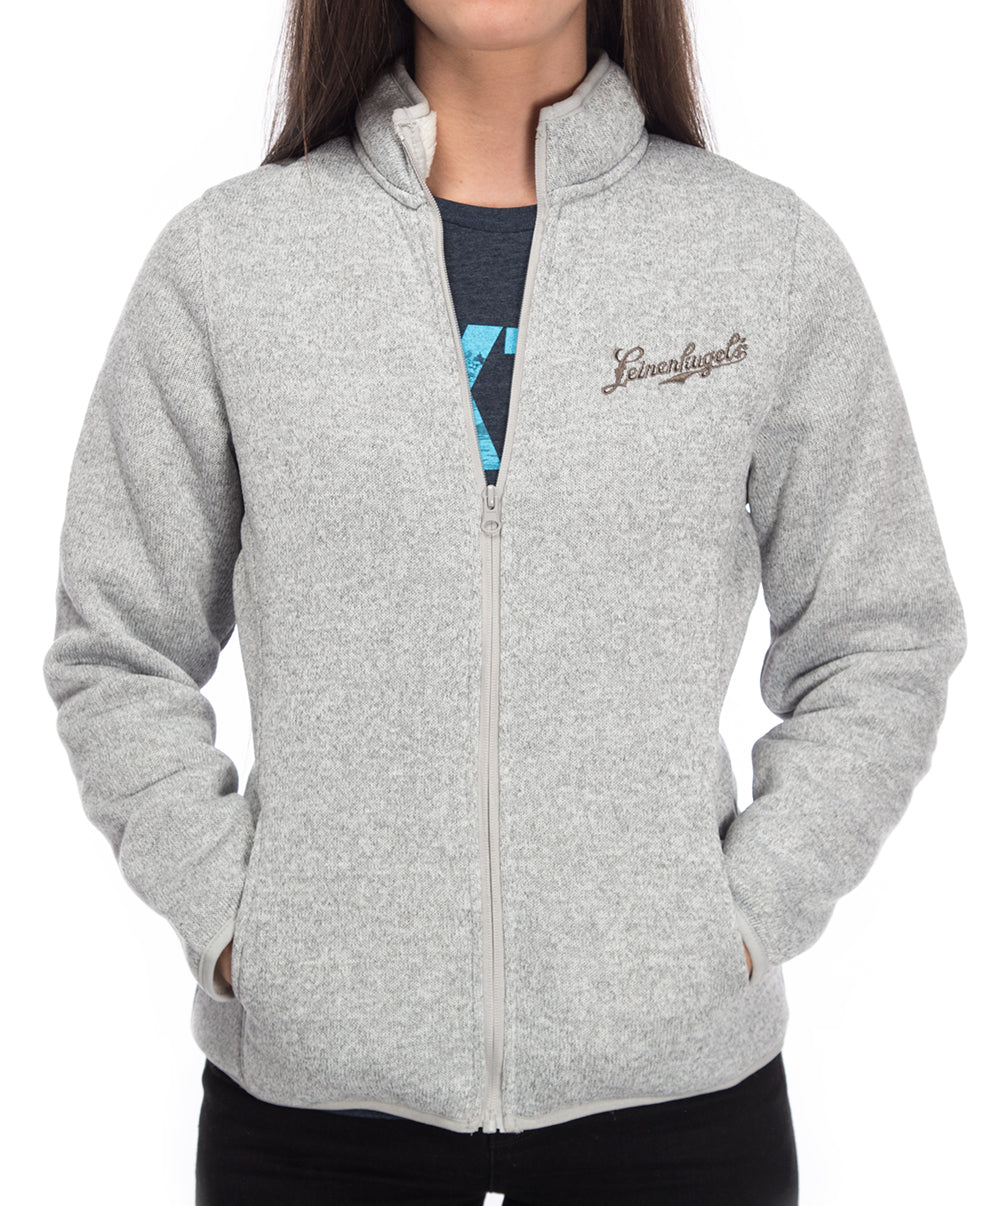 LADIES PAT FULL ZIP FLEECE